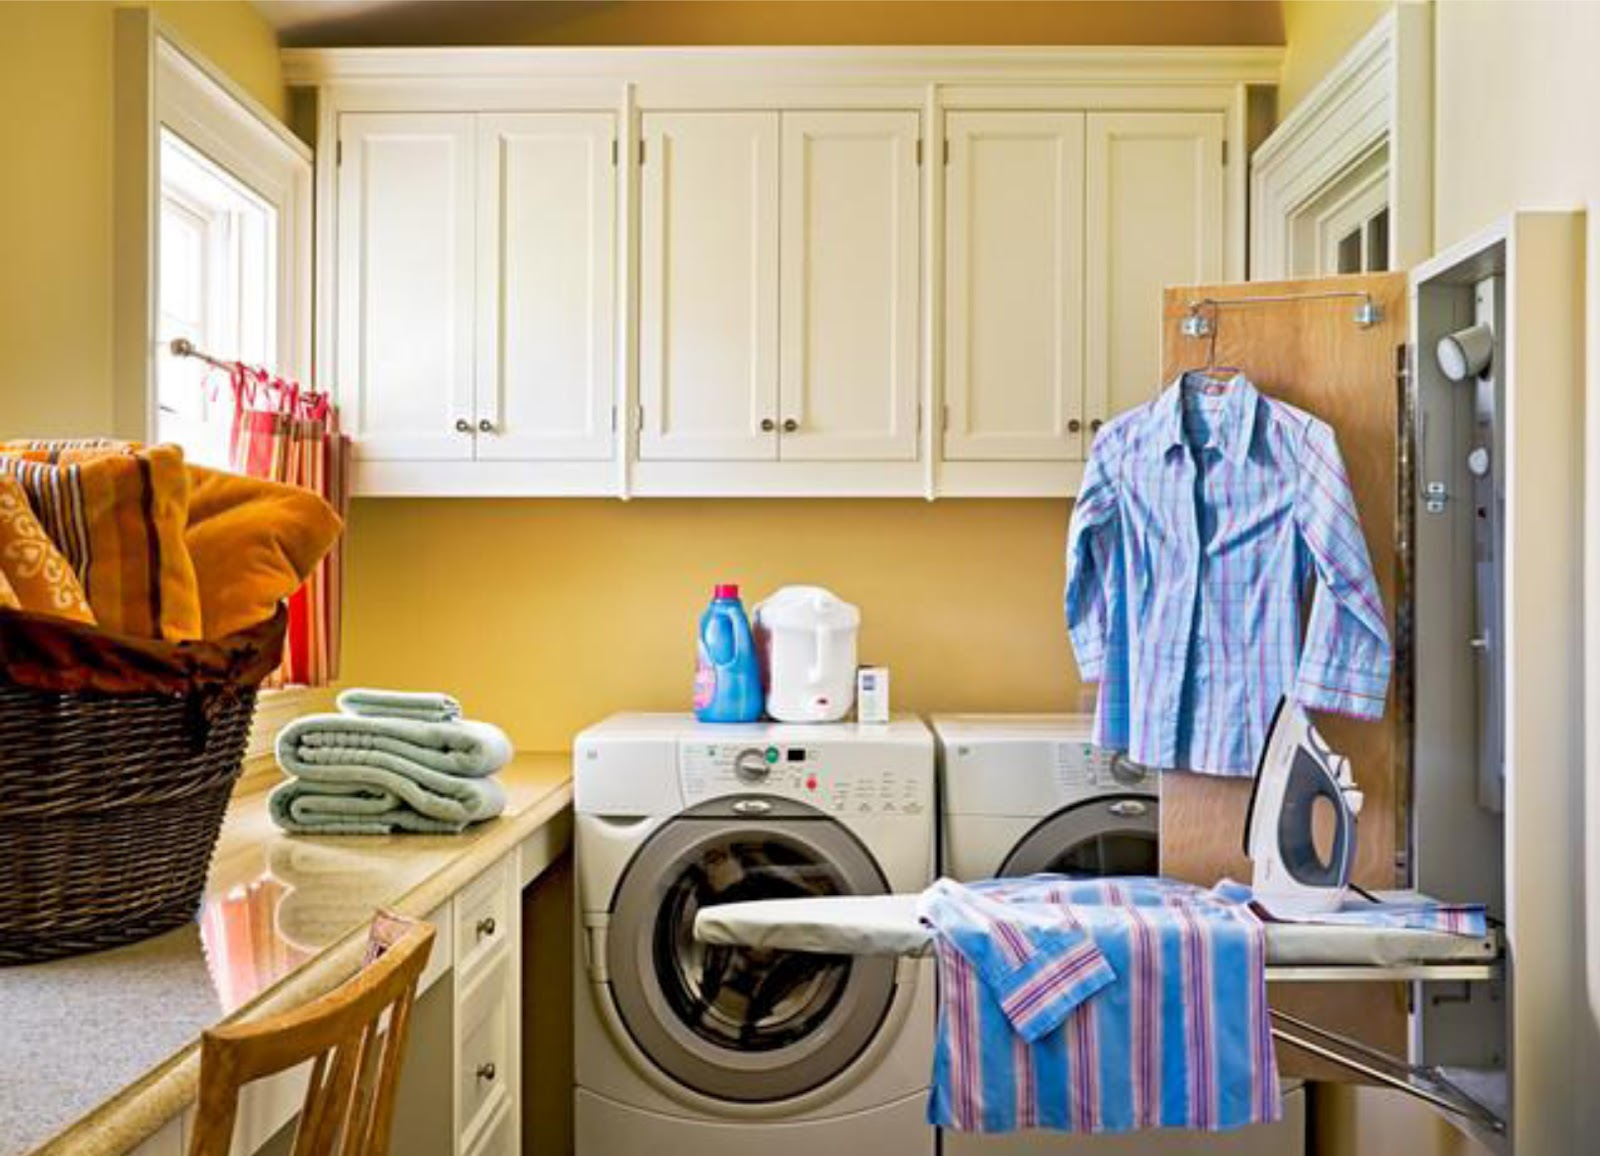 Simplifying remodeling designer 39 s touch 10 tidy laundry rooms - Ironing board solutions for small spaces ideas ...